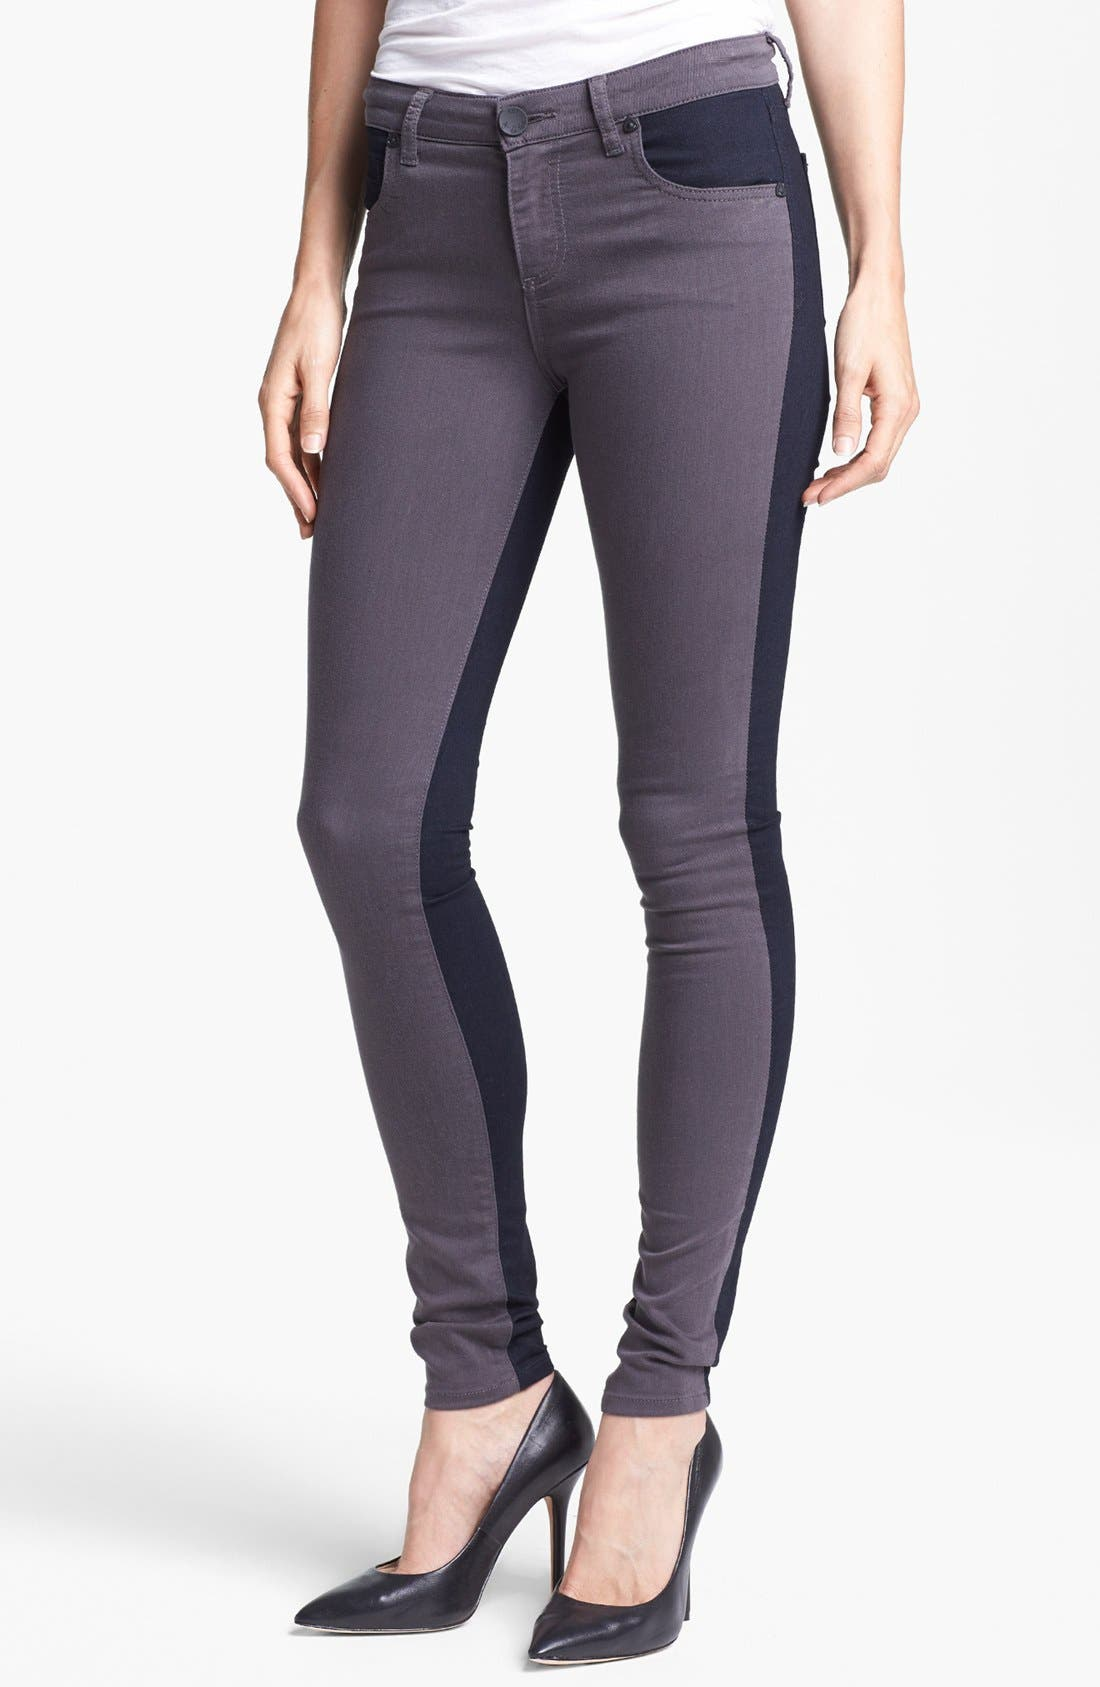 Alternate Image 1 Selected - KUT from the Kloth Colorblock Skinny Jeans